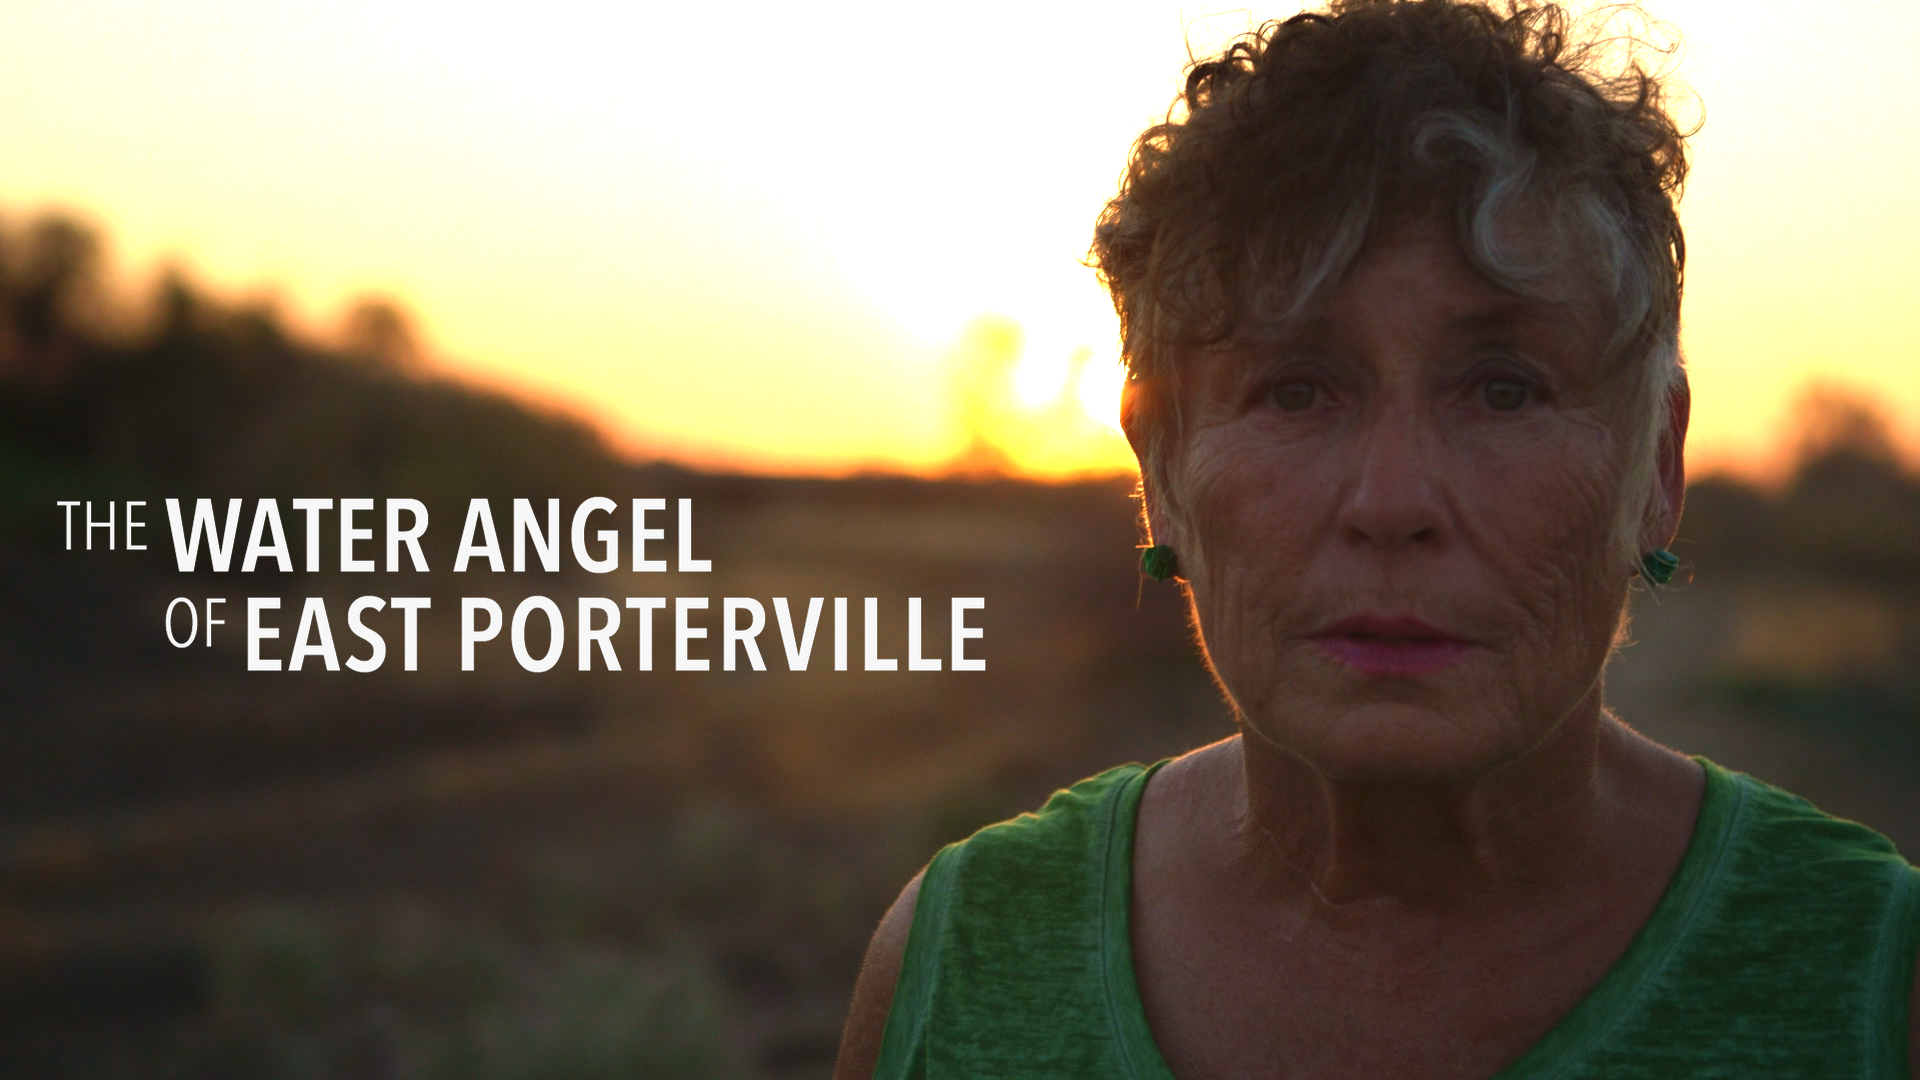 The Water Angel of East Porterville